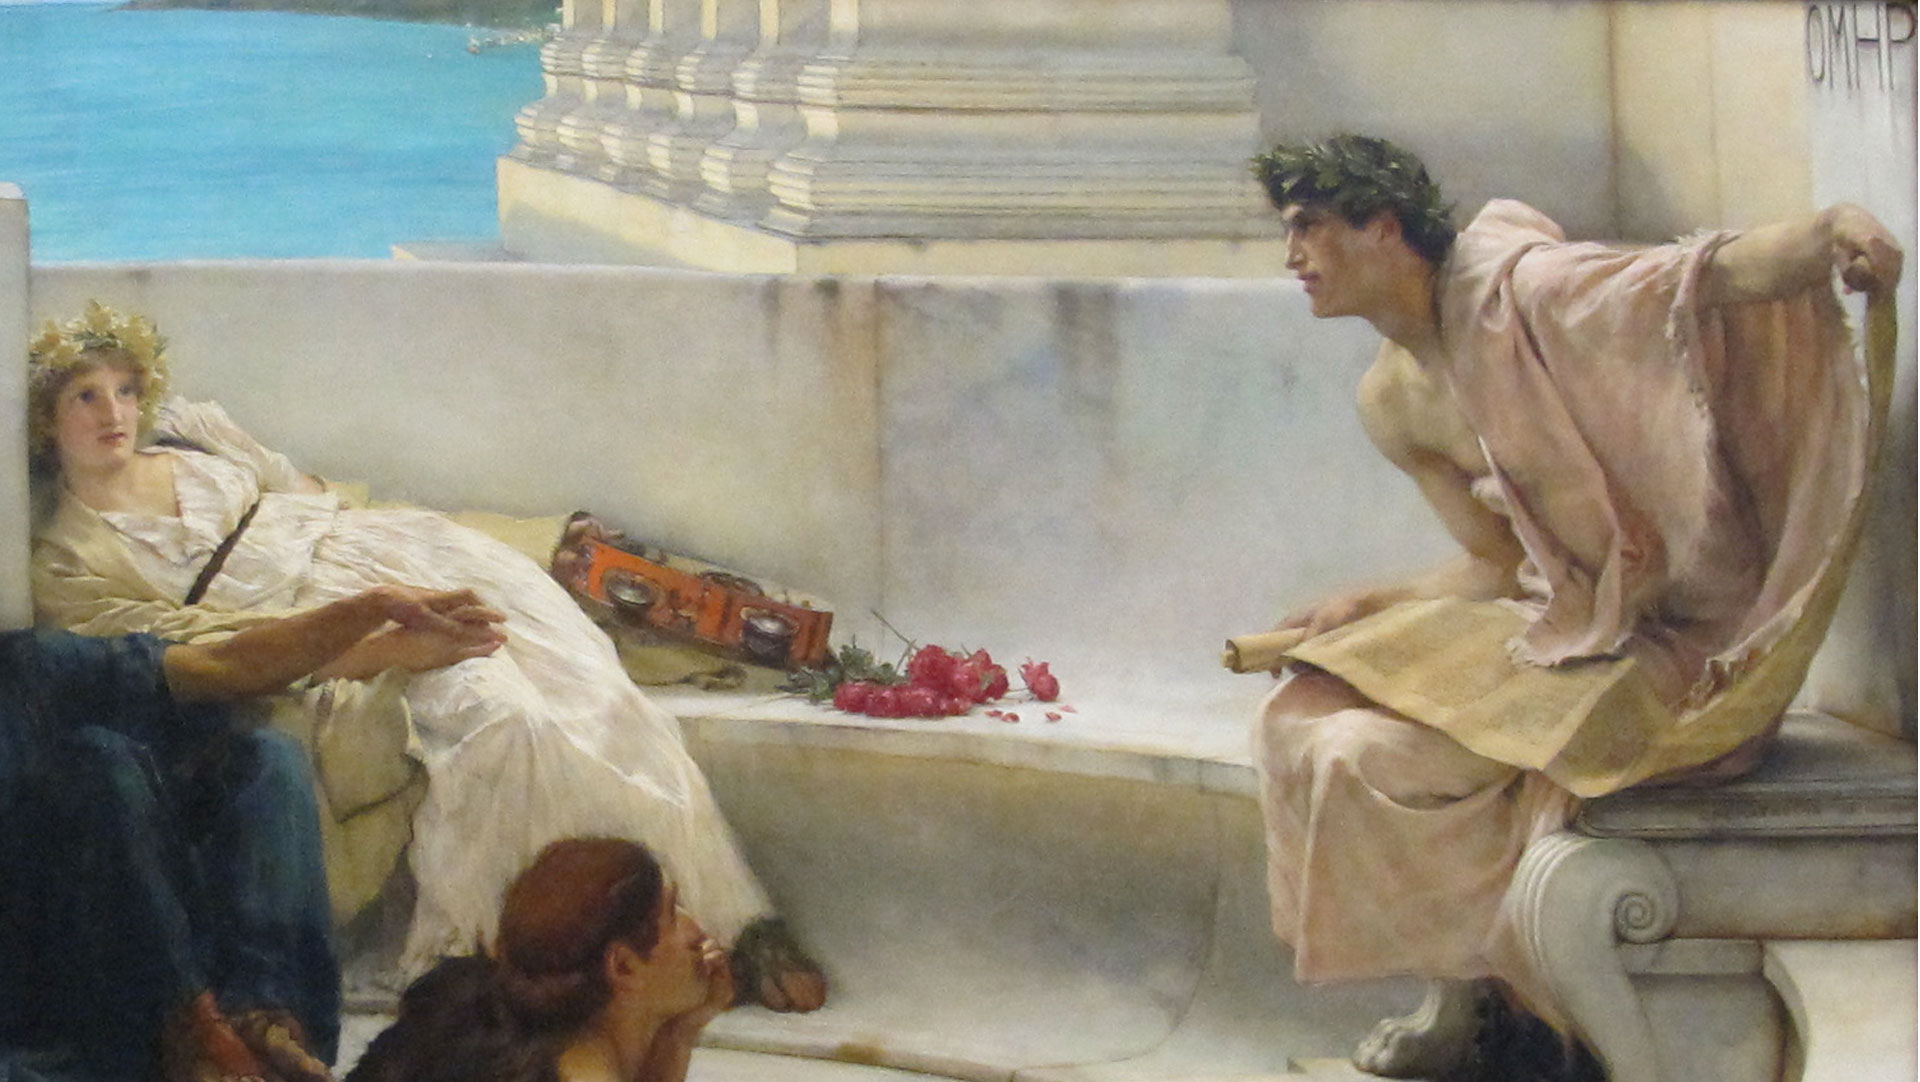 <p>Lawrence Alma-Tadema, A reading form Homer, detail, 1885, Philadelphia Museum of Art Sailko [CC BY 3.0 (https://creativecommons.org/licenses/by/3.0)], from Wikimedia Commons</p>